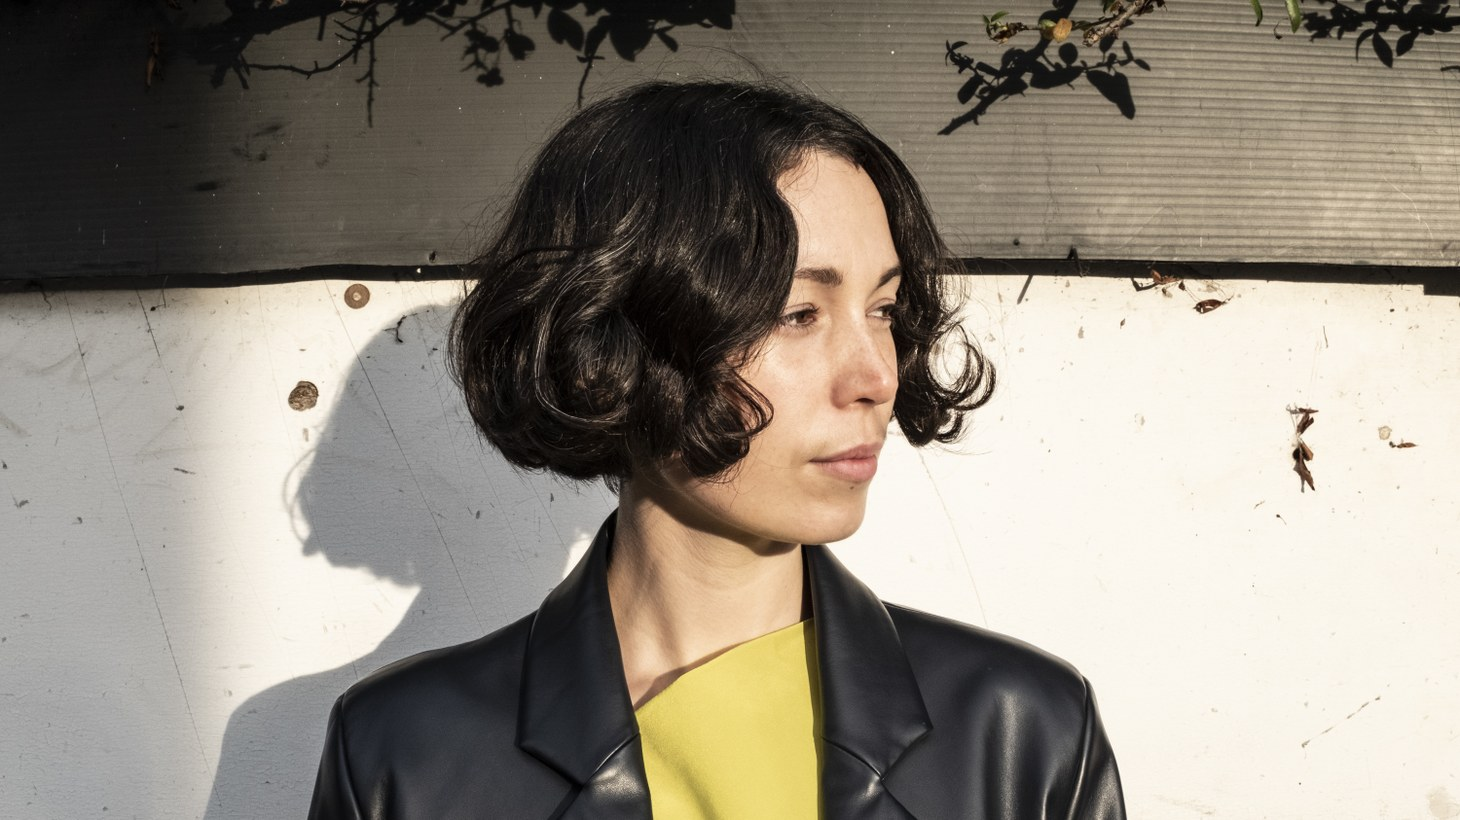 """Somewhere between folk-pop and techno -- you'll find Kelly Lee Owens. This one-time nurse aims to cure herself from an emotionally fraught period; Owens clears the air with """"Wake Up,"""" a great way to start the day."""